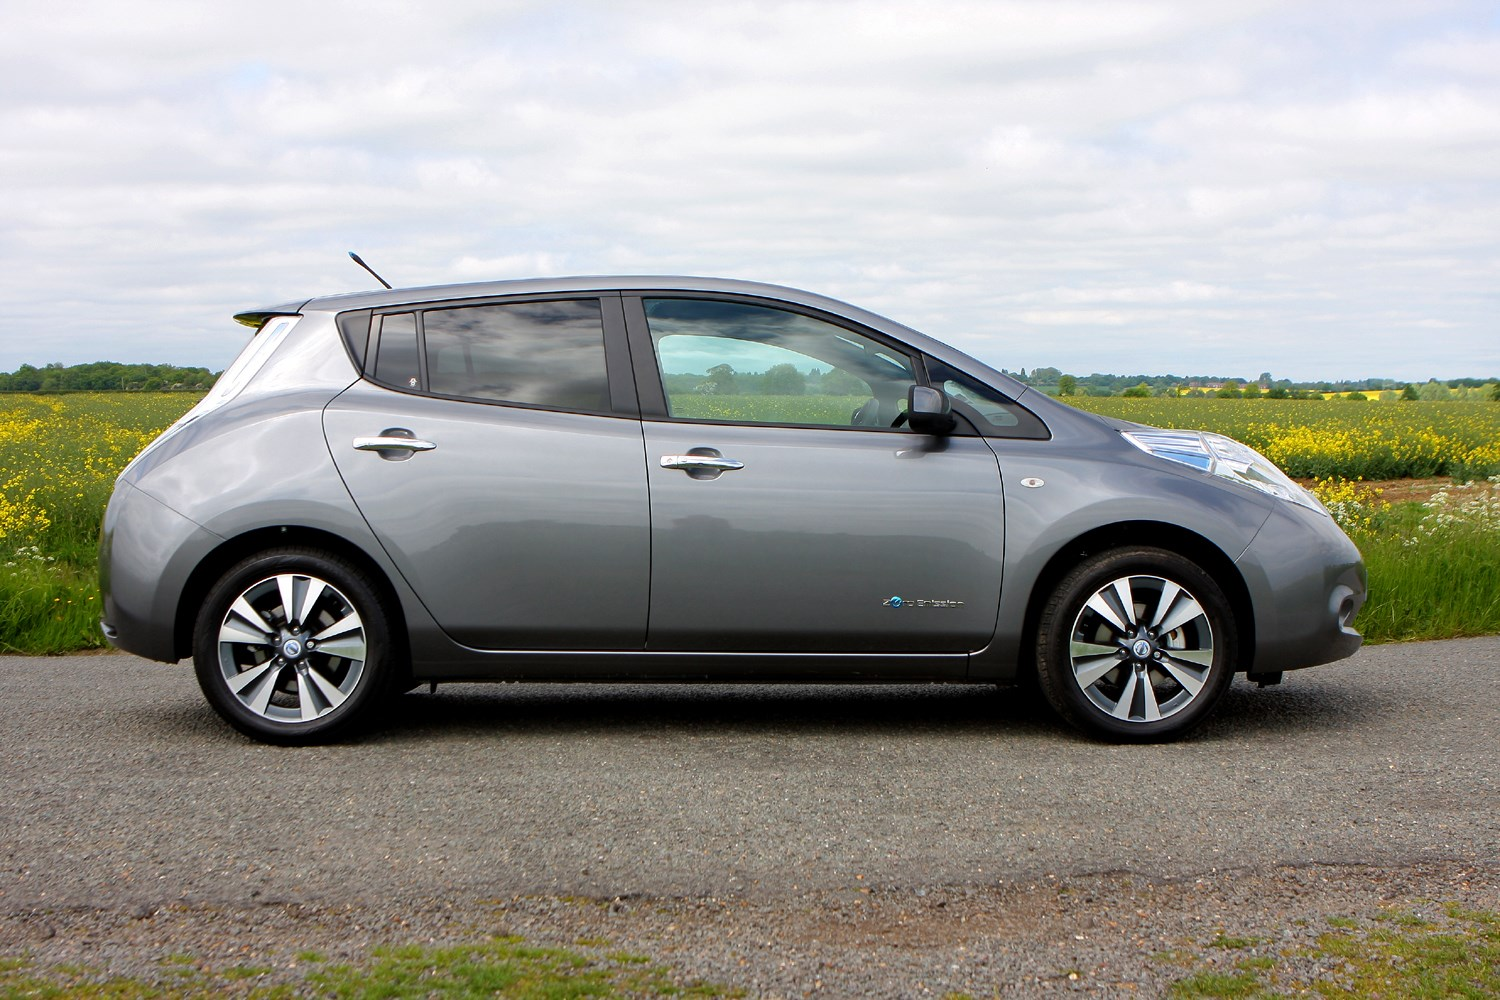 new 2018 nissan leaf spy photos by car magazine autos post. Black Bedroom Furniture Sets. Home Design Ideas